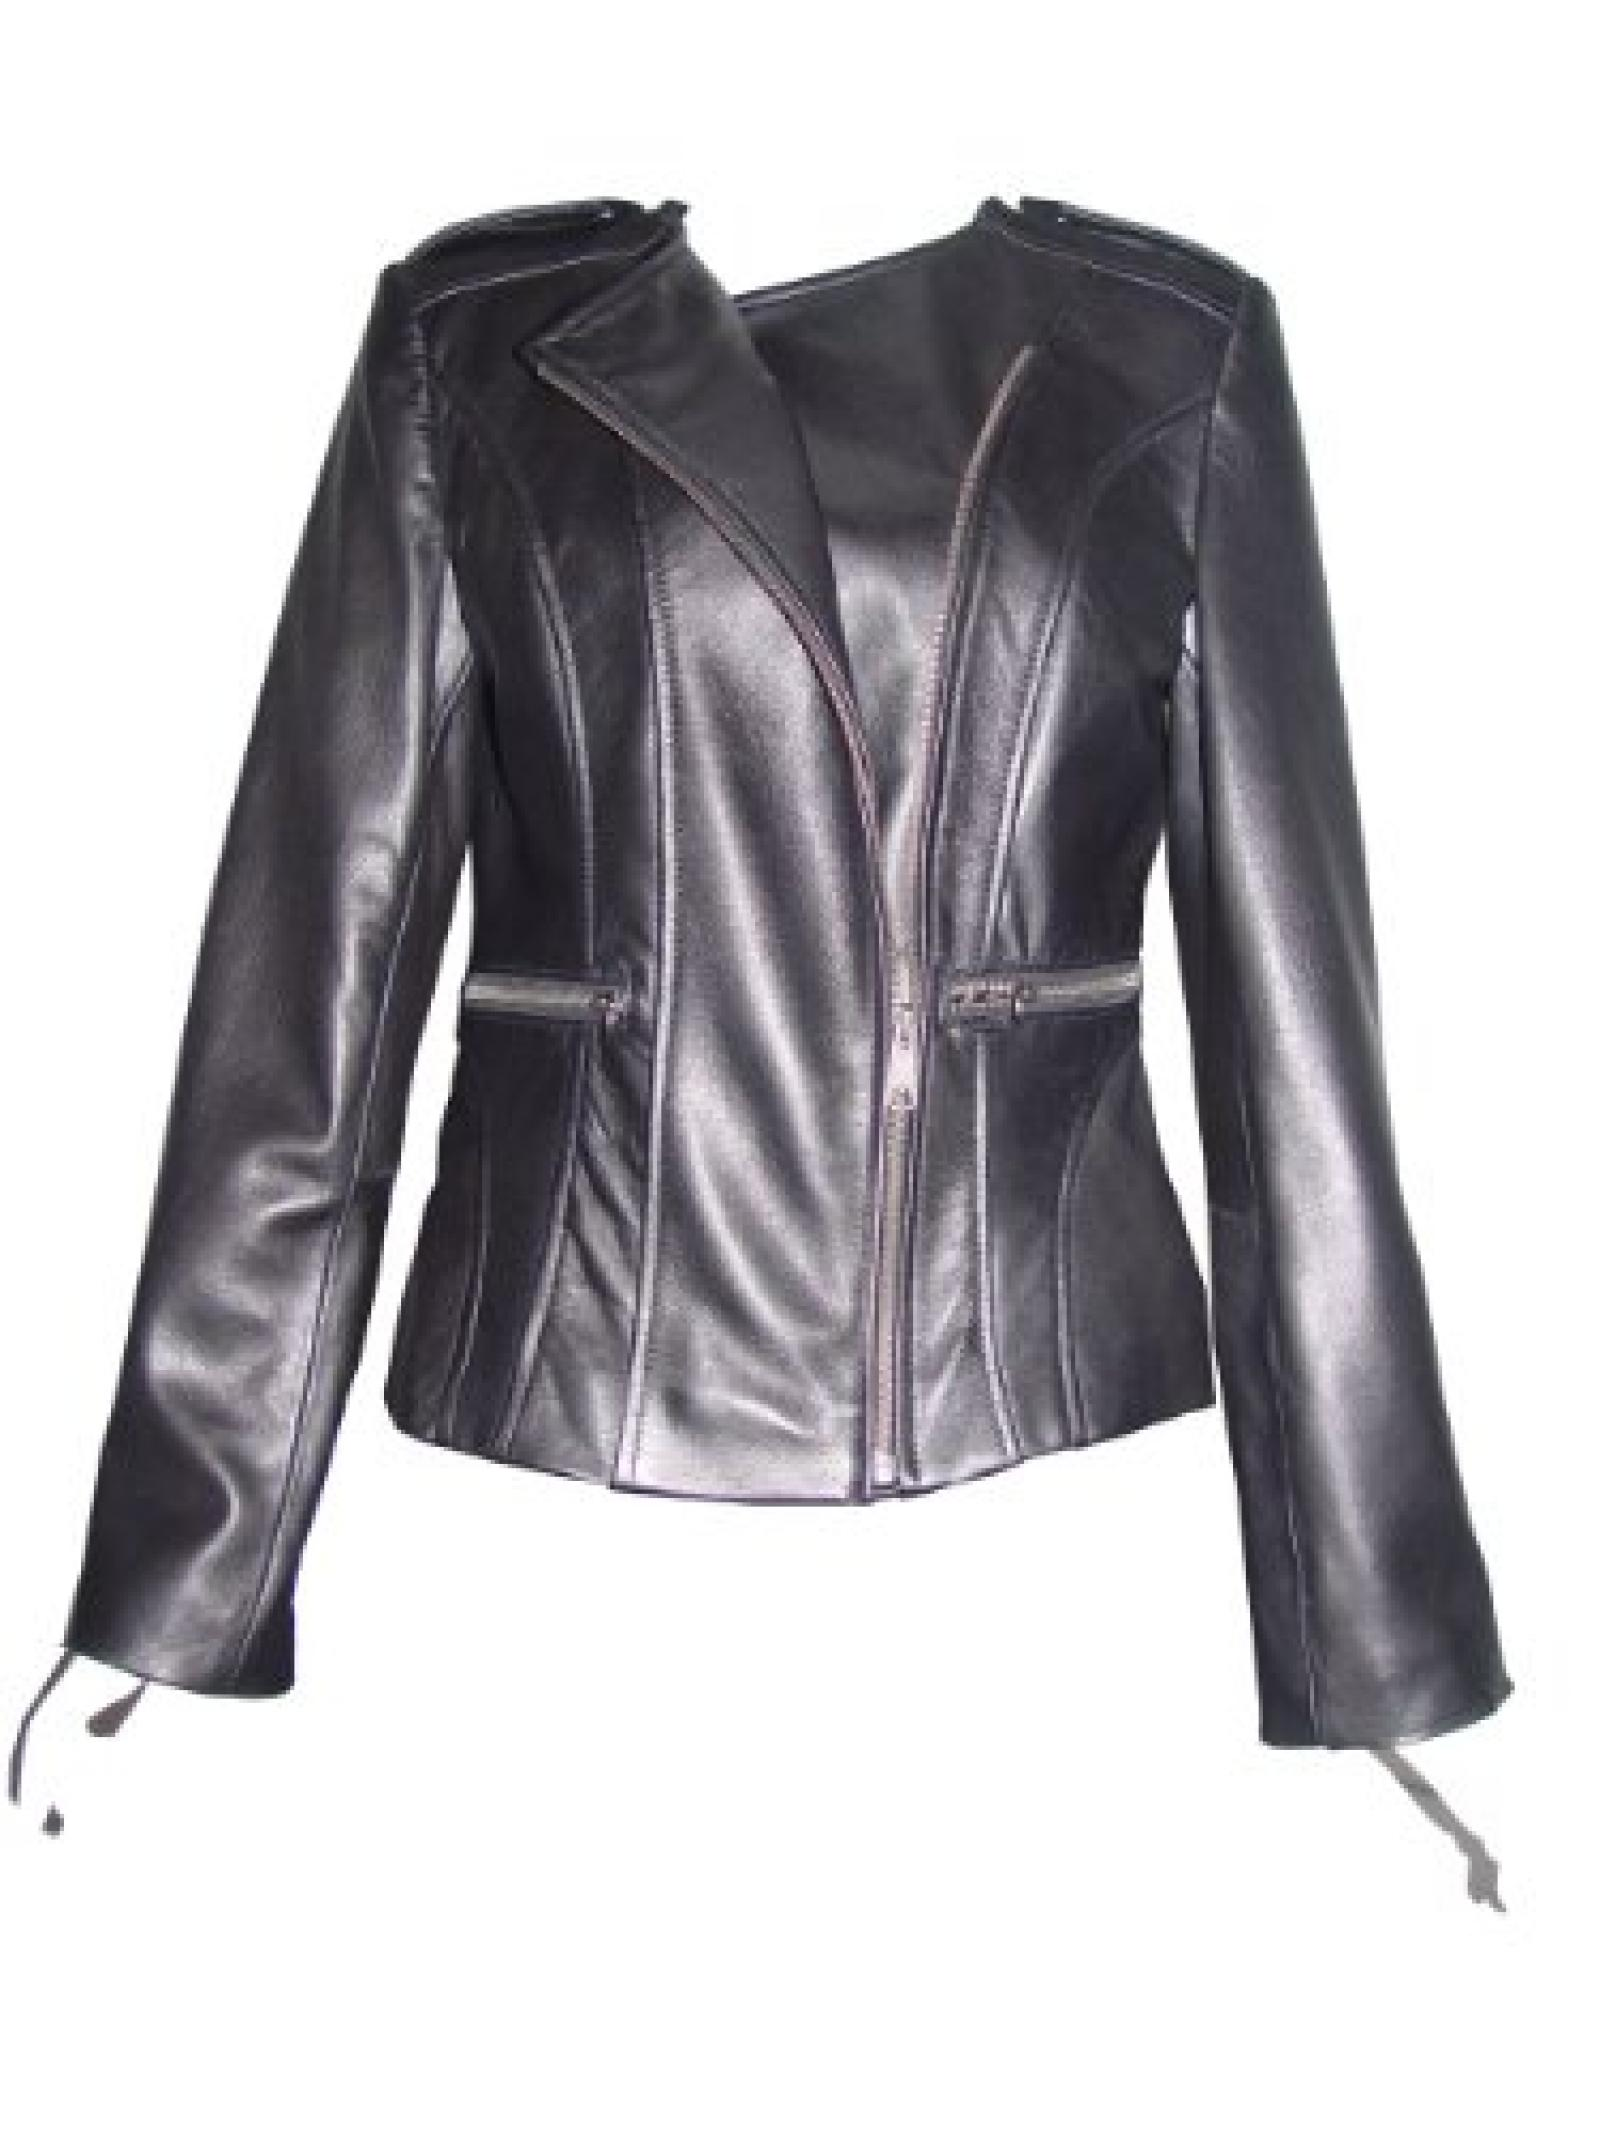 Nettailor FREE tailoring Women PLUS SIZE 4069 Leather Moto Jacket Collarless